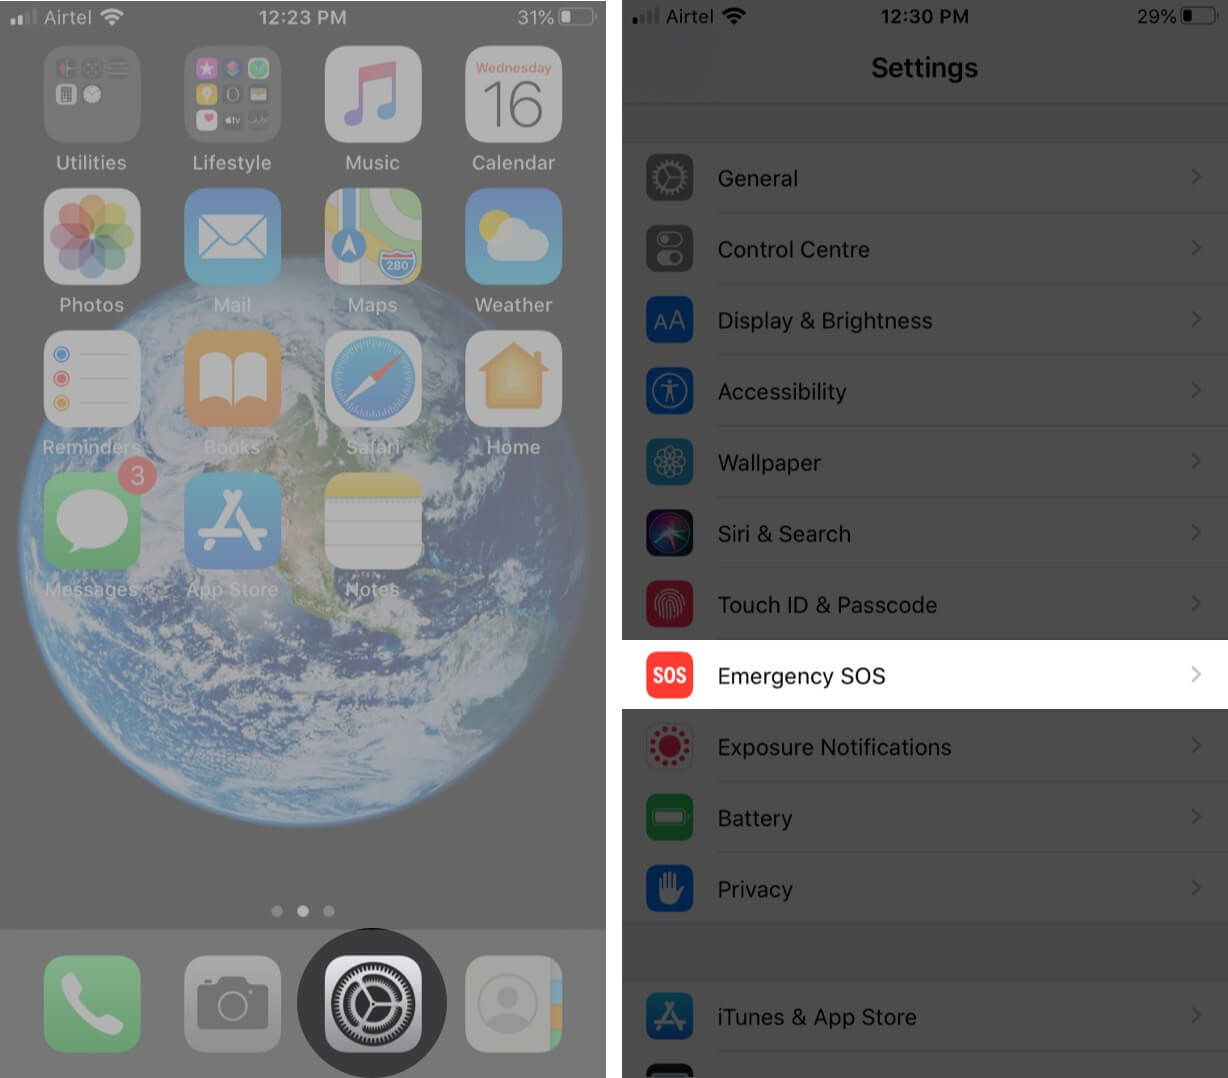 open settings and tap on emergency sos on iphone